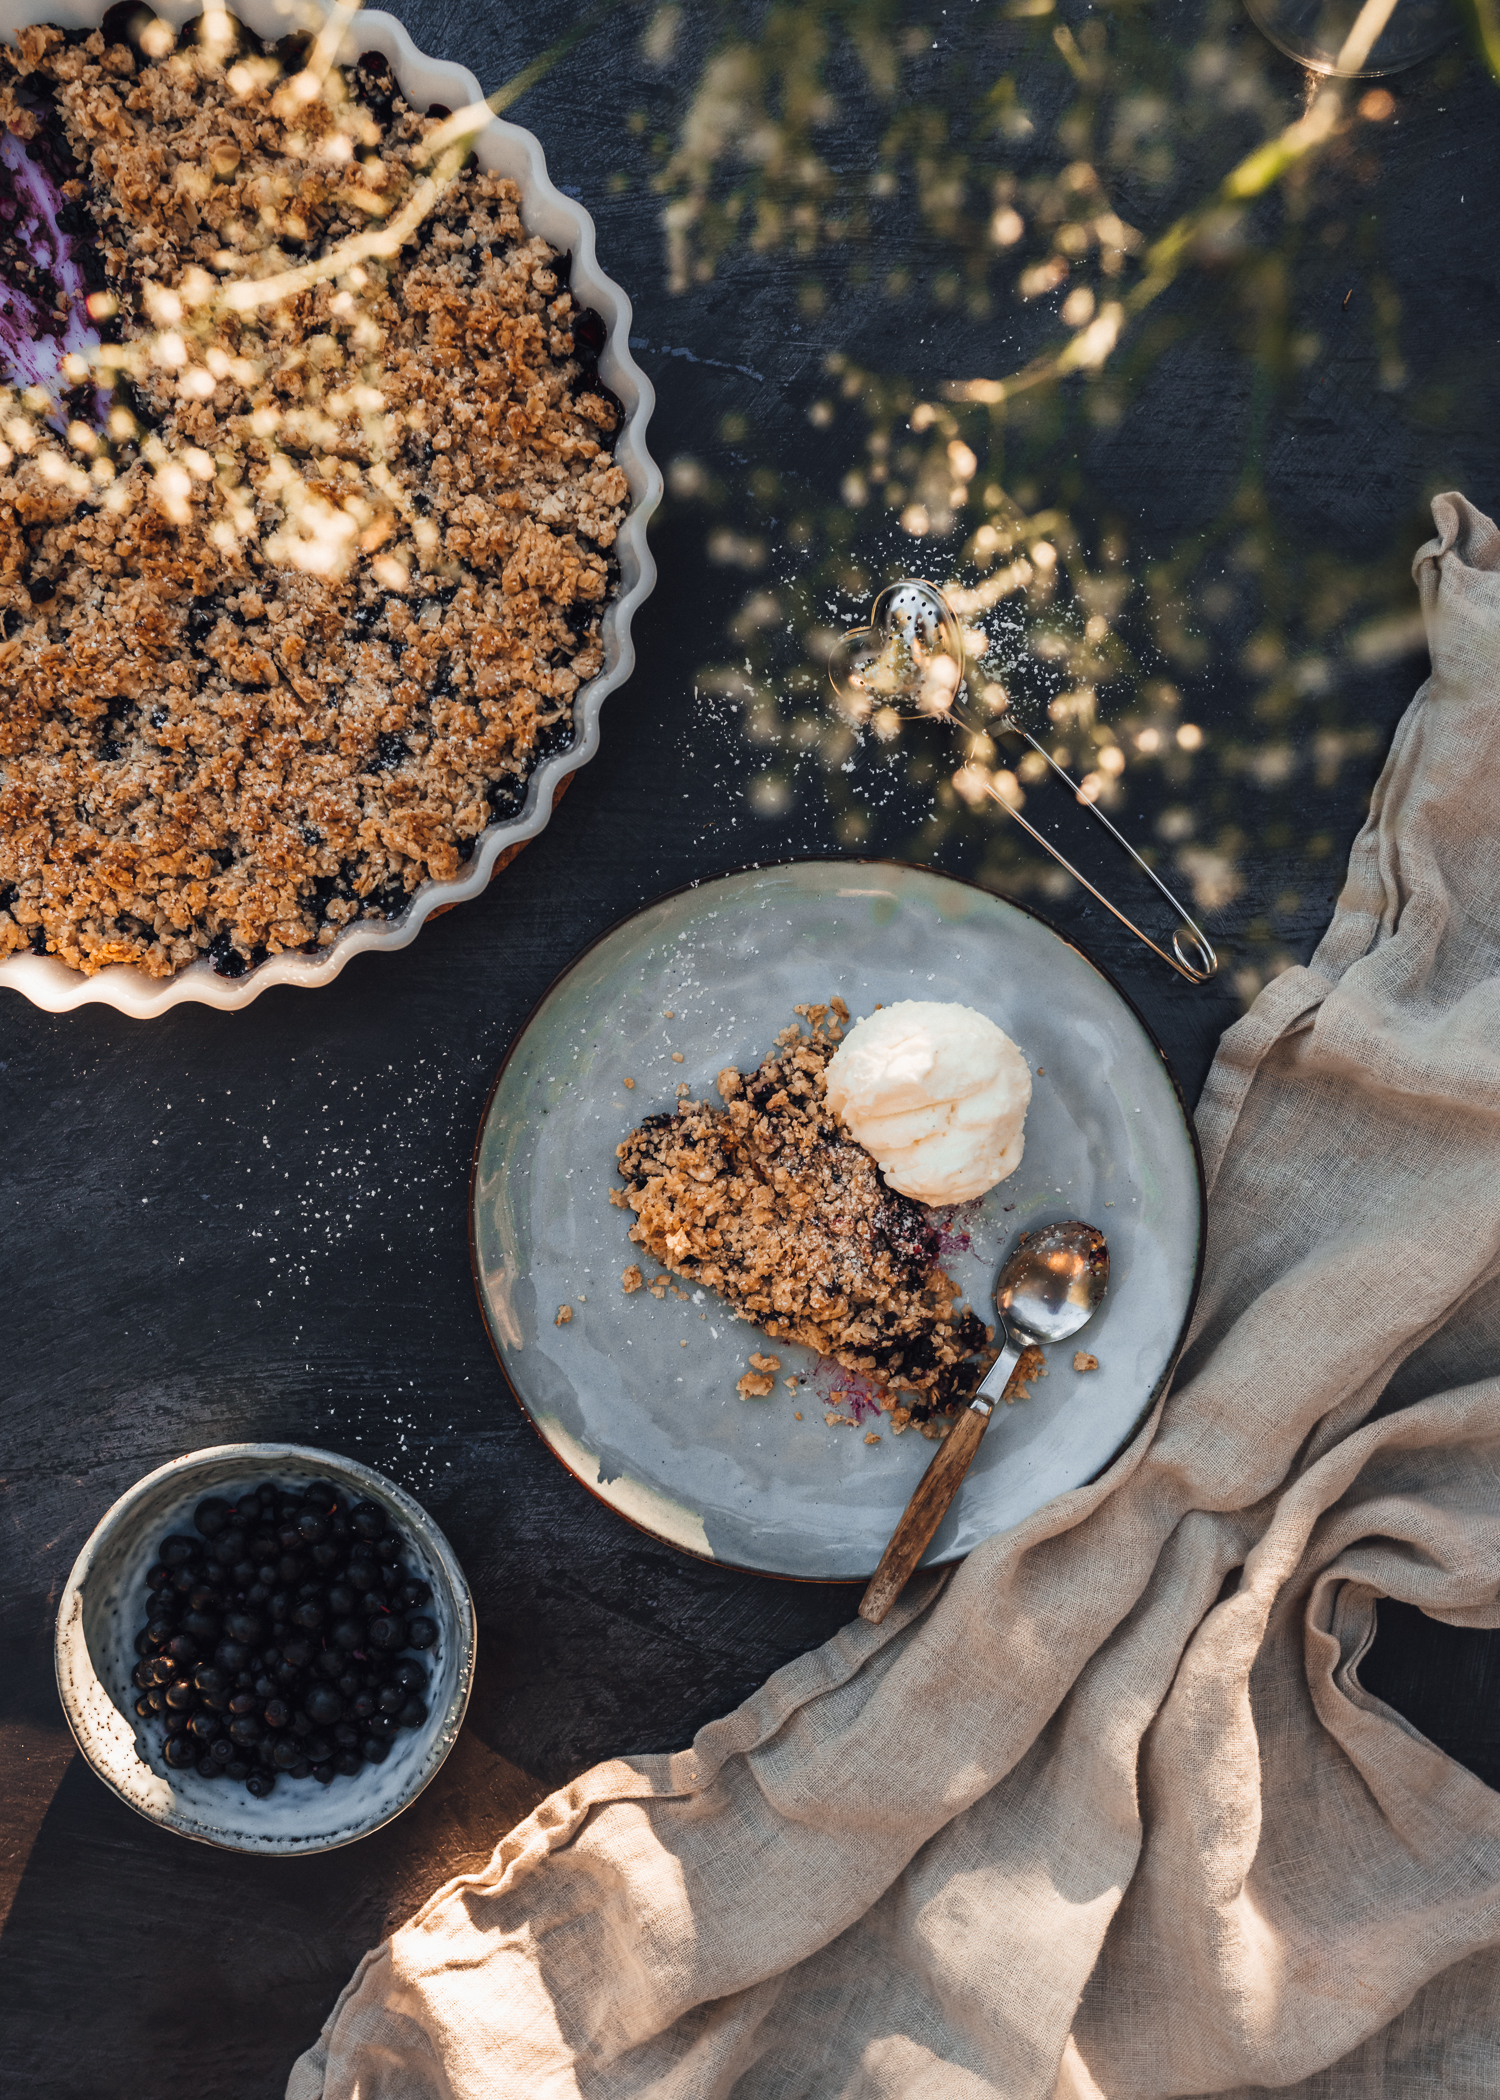 Swedish Vegan Blueberry Crumble Pie with Vanilla Ice Cream